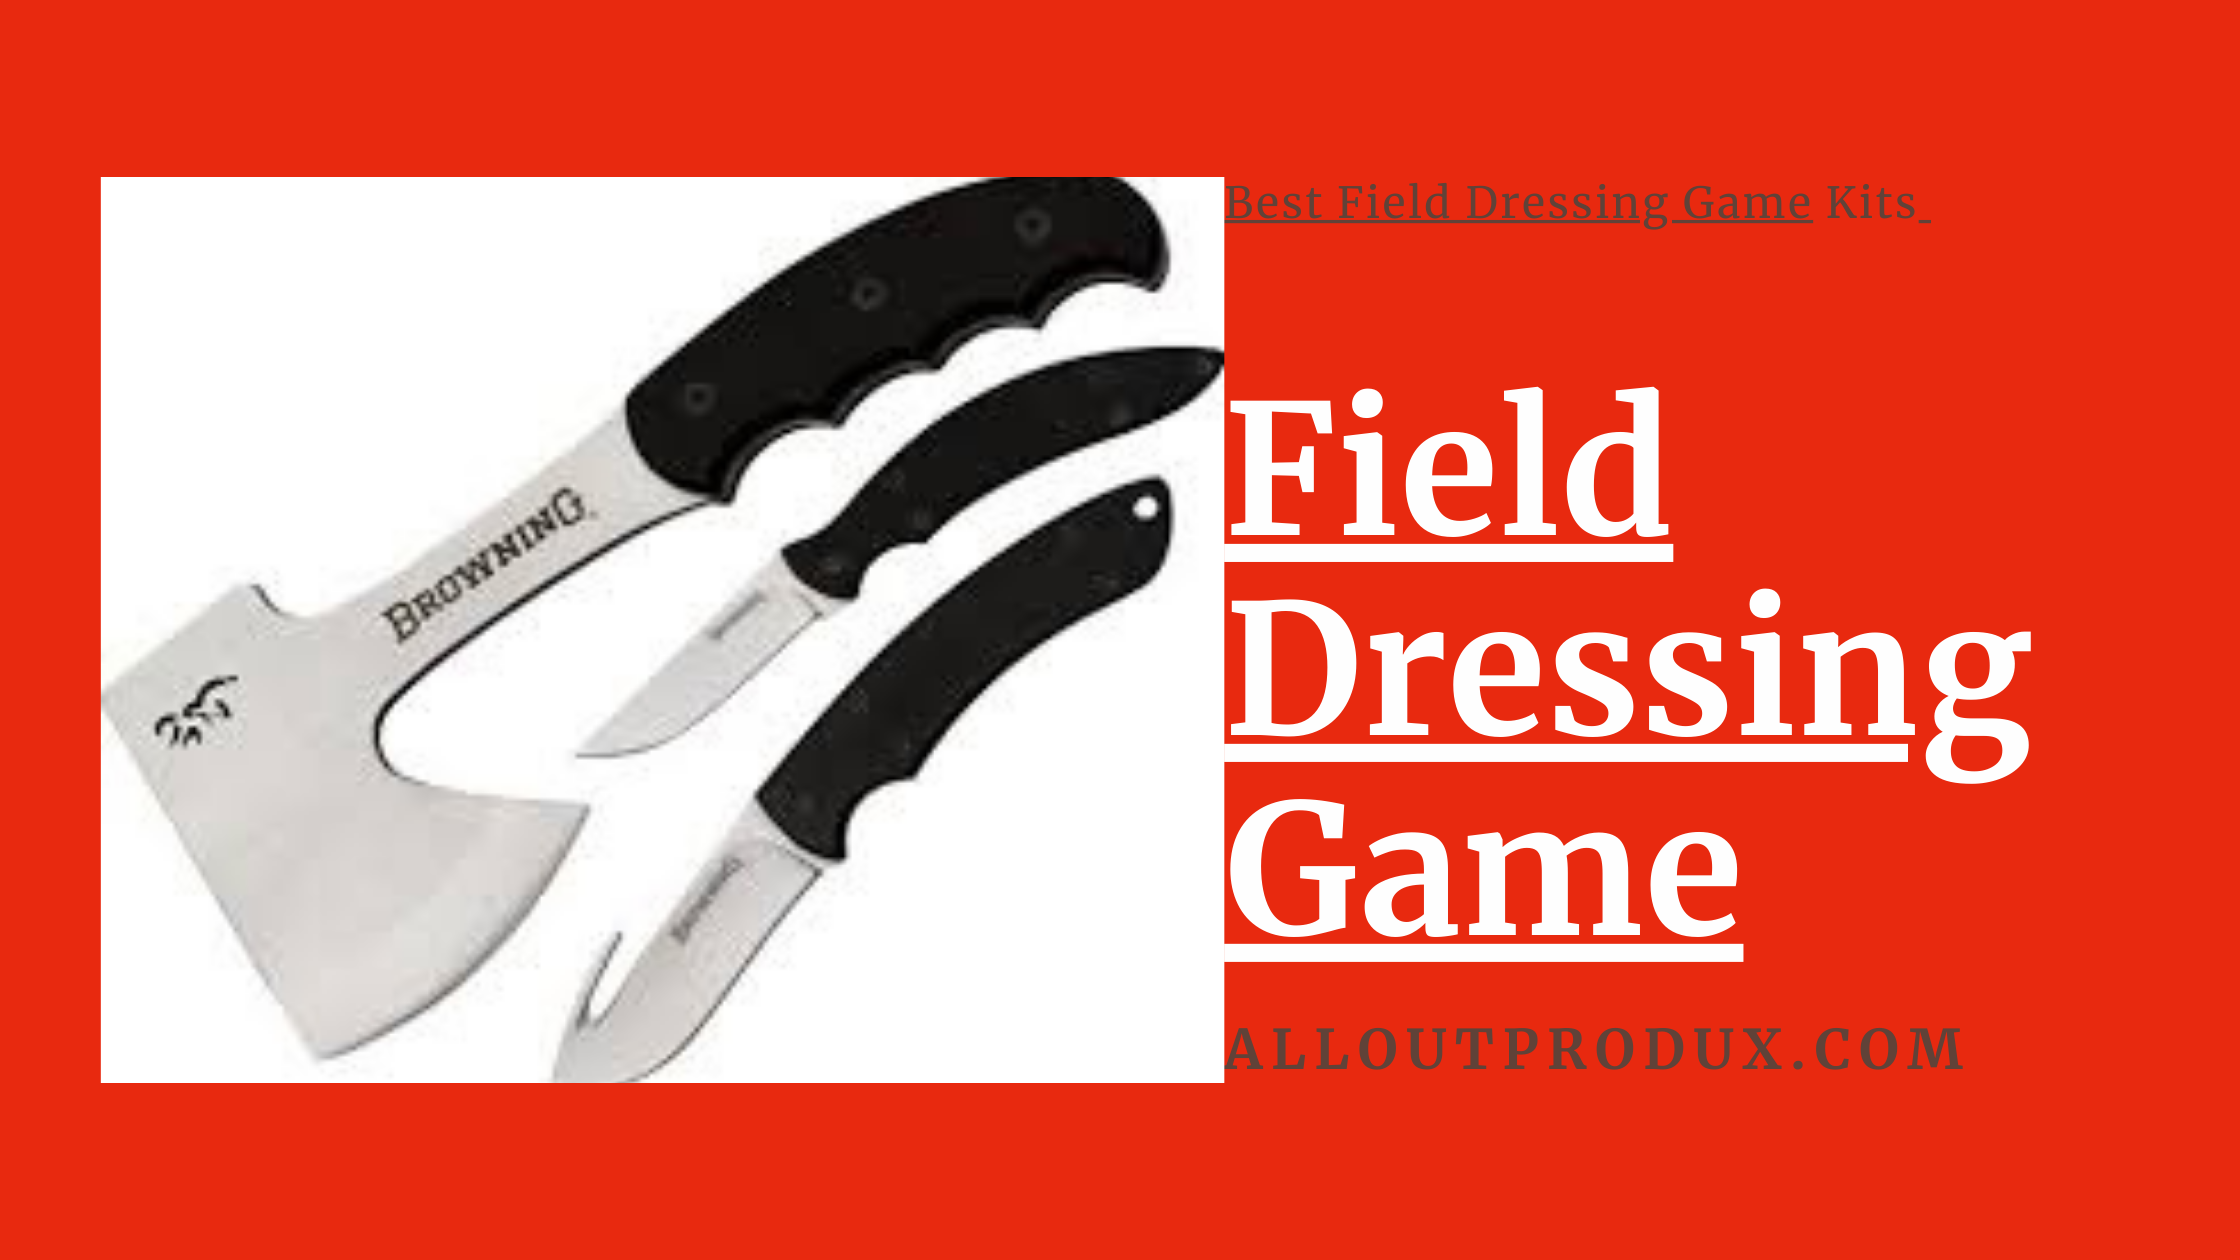 3 sets of browning knives used for field dressing game